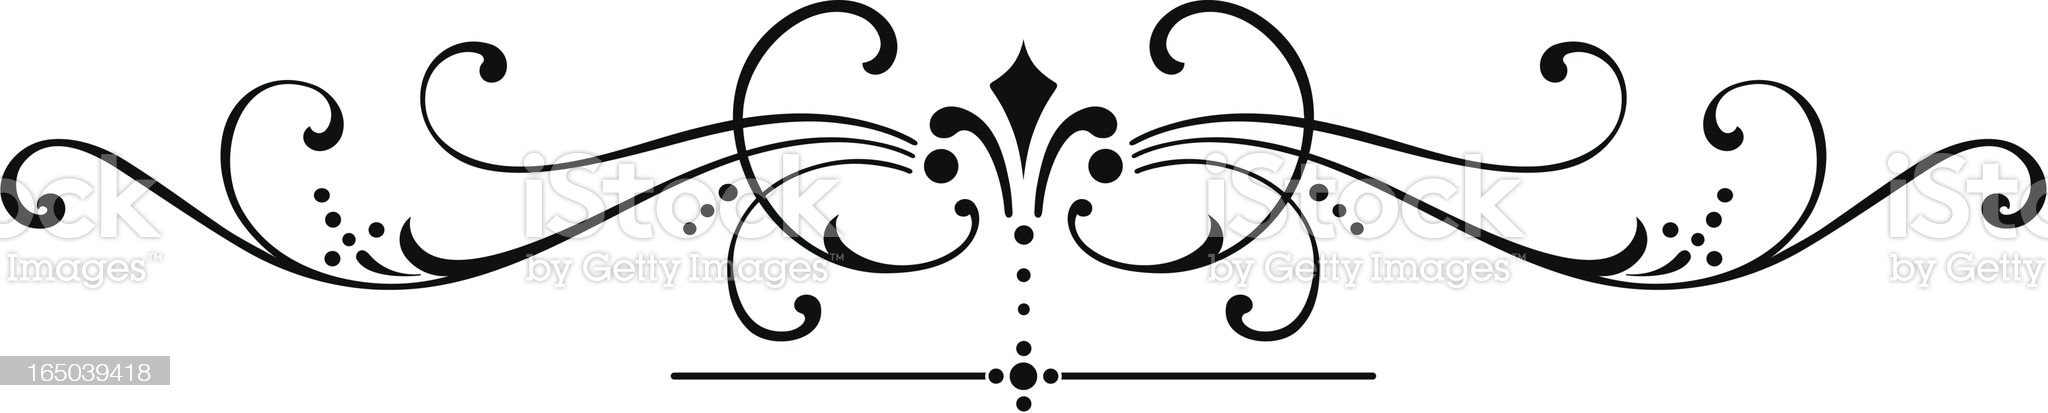 ornate scroll royalty-free stock vector art